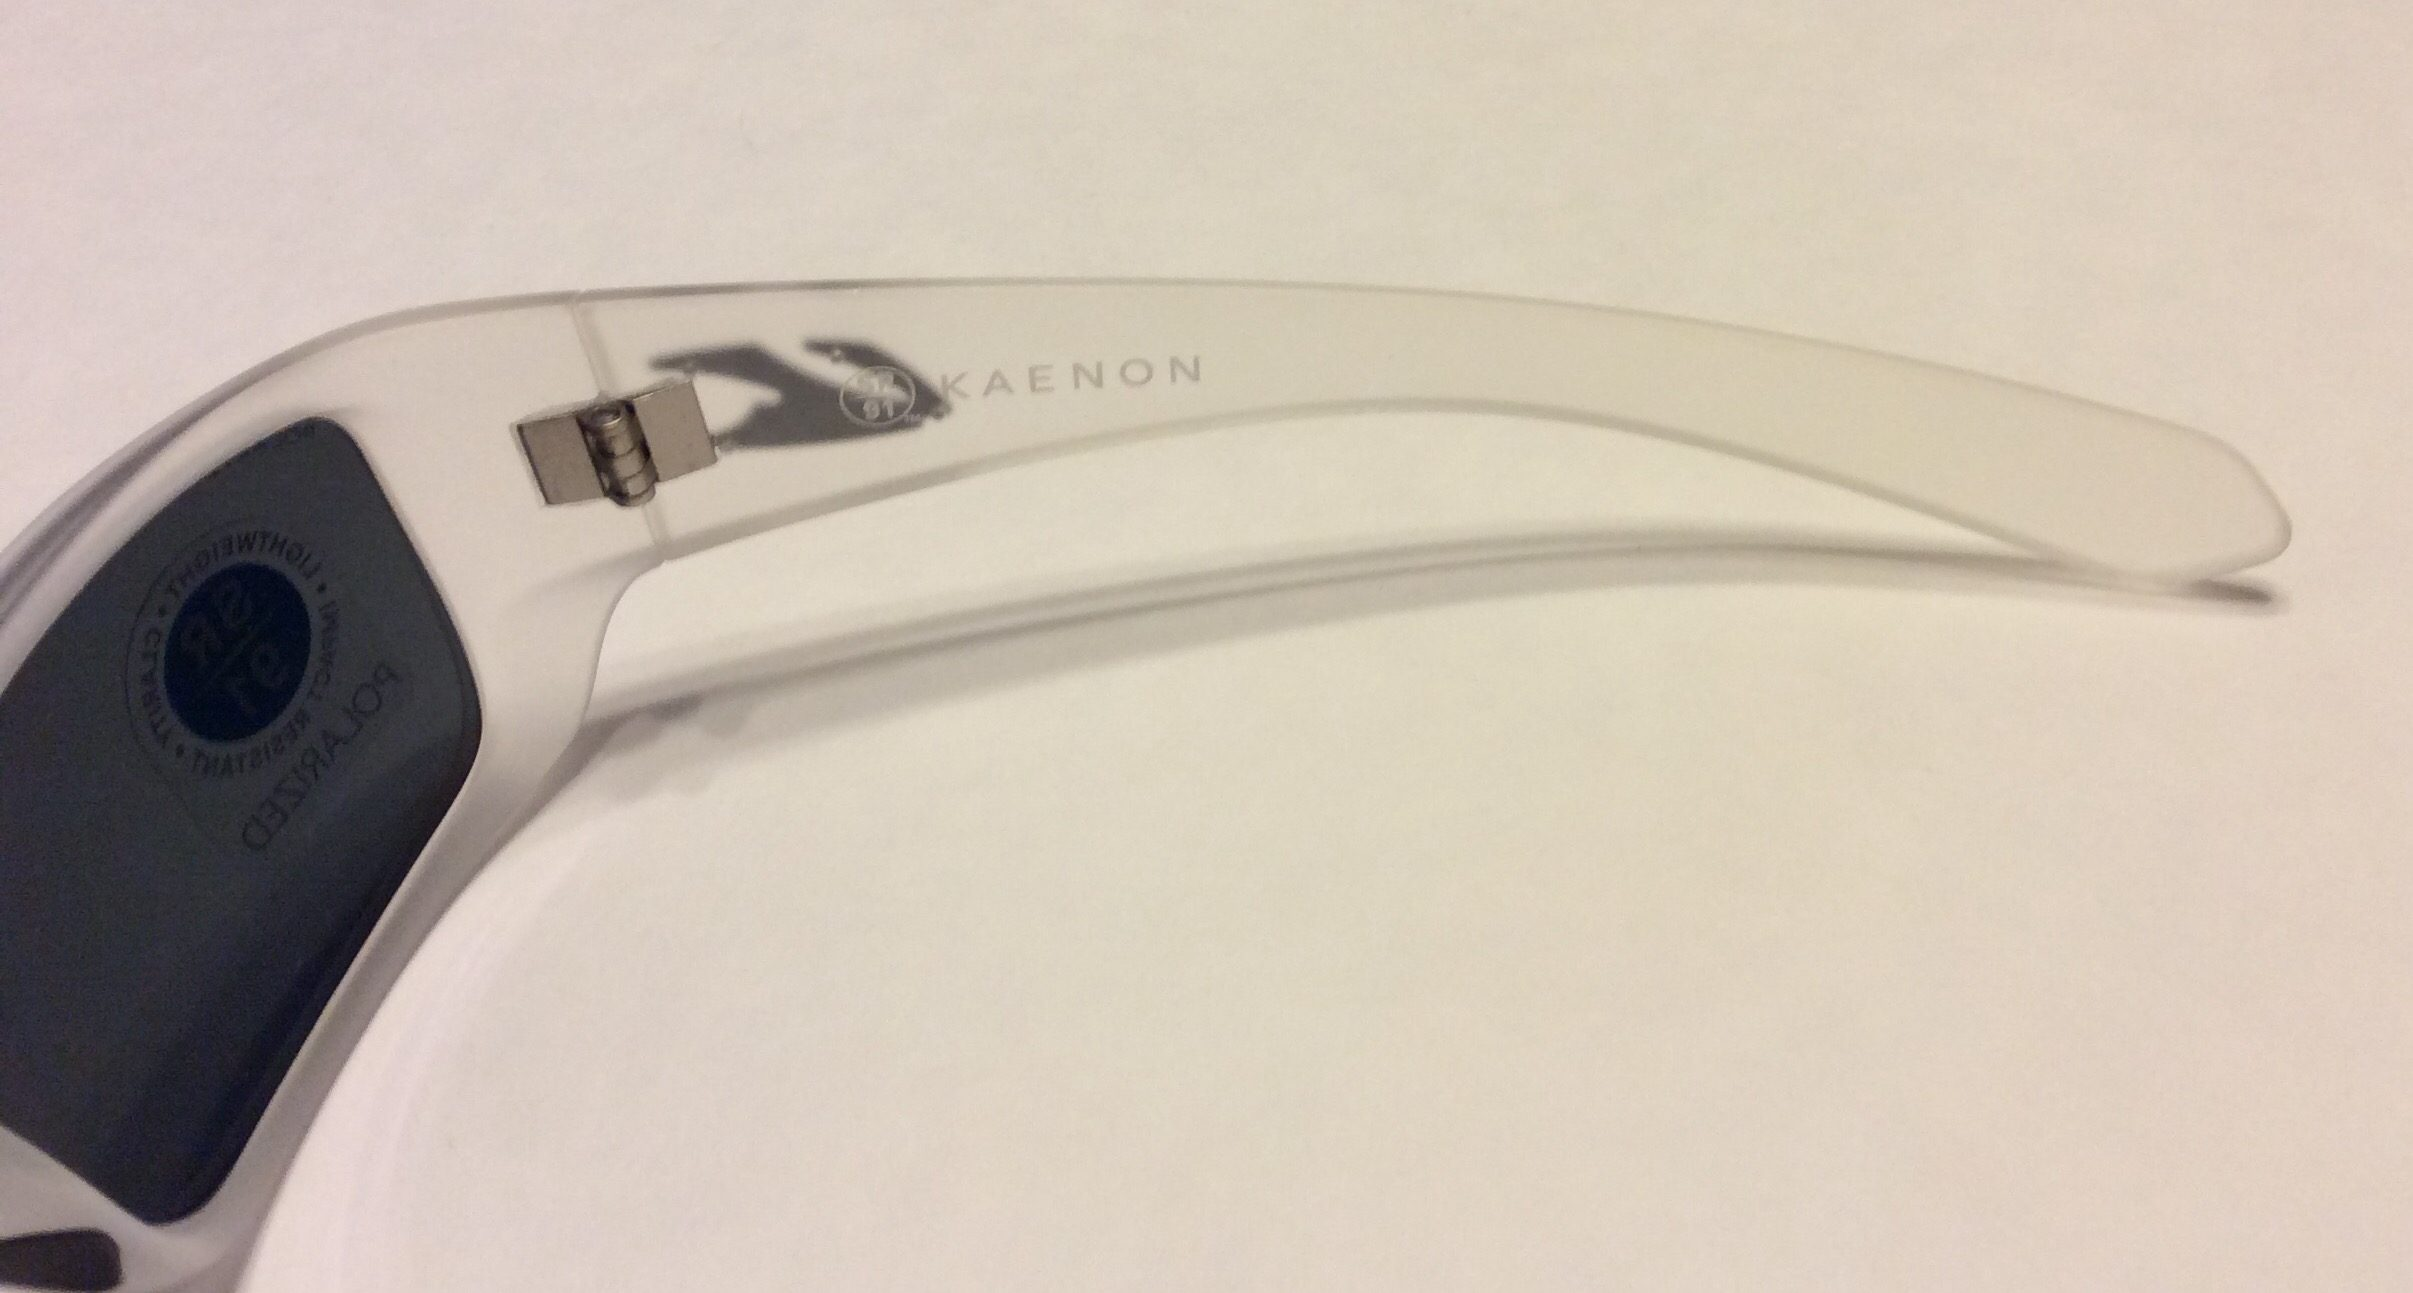 Kaenon Pintail Sunglasses - Frost Limited Edition POLARIZED Gray Mirror 029-16-G12M